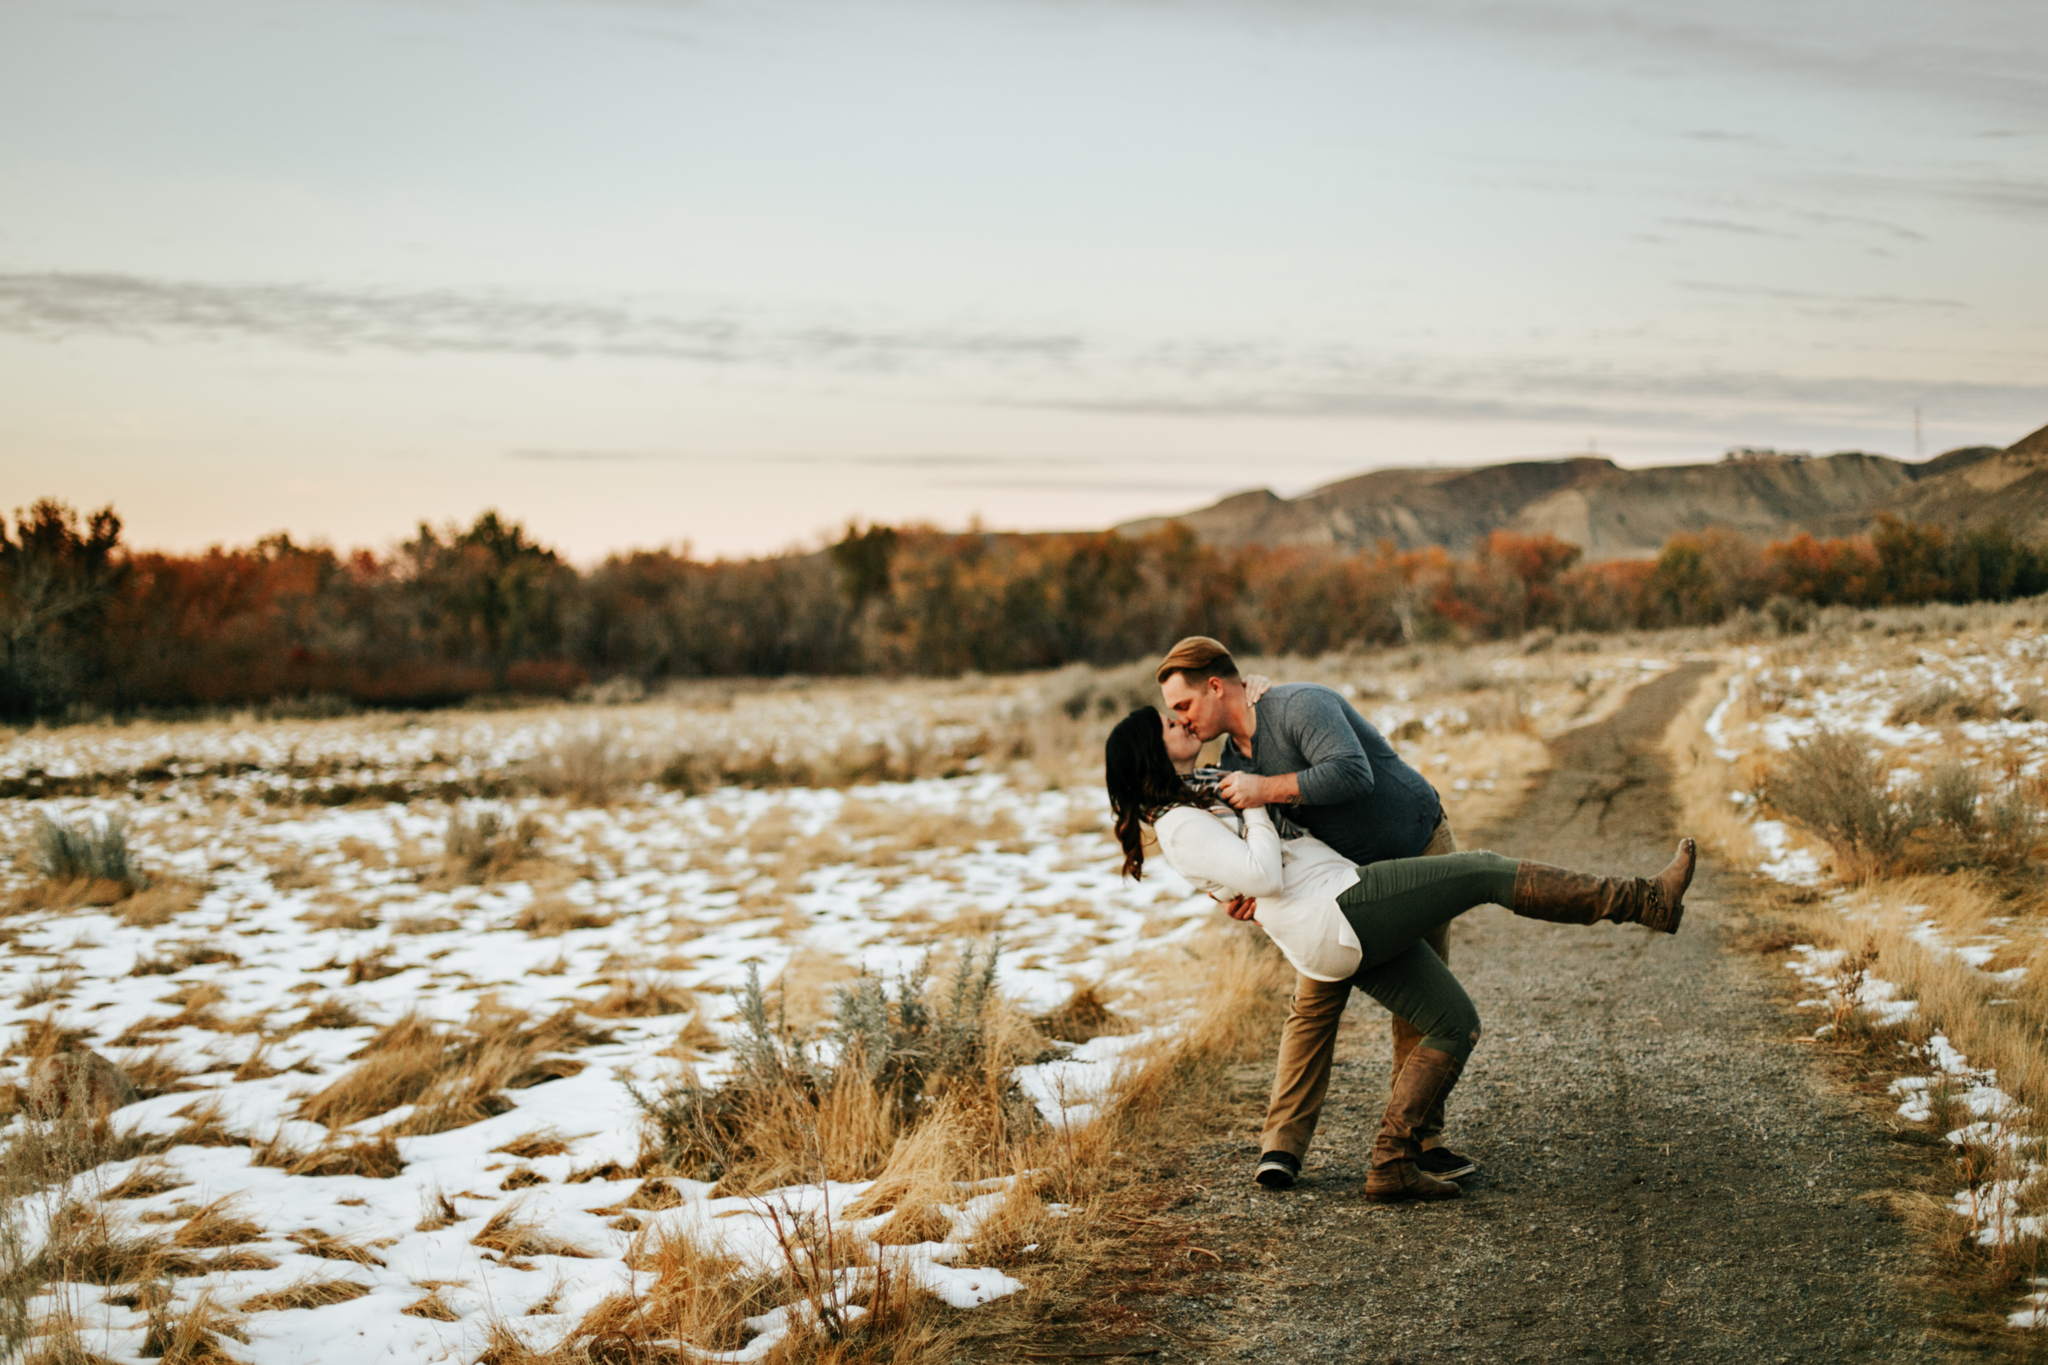 lethbridge-photographer-love-and-be-loved-photography-christy-bryan-fall-autumn-engagement-photo-image-picture-68.jpg